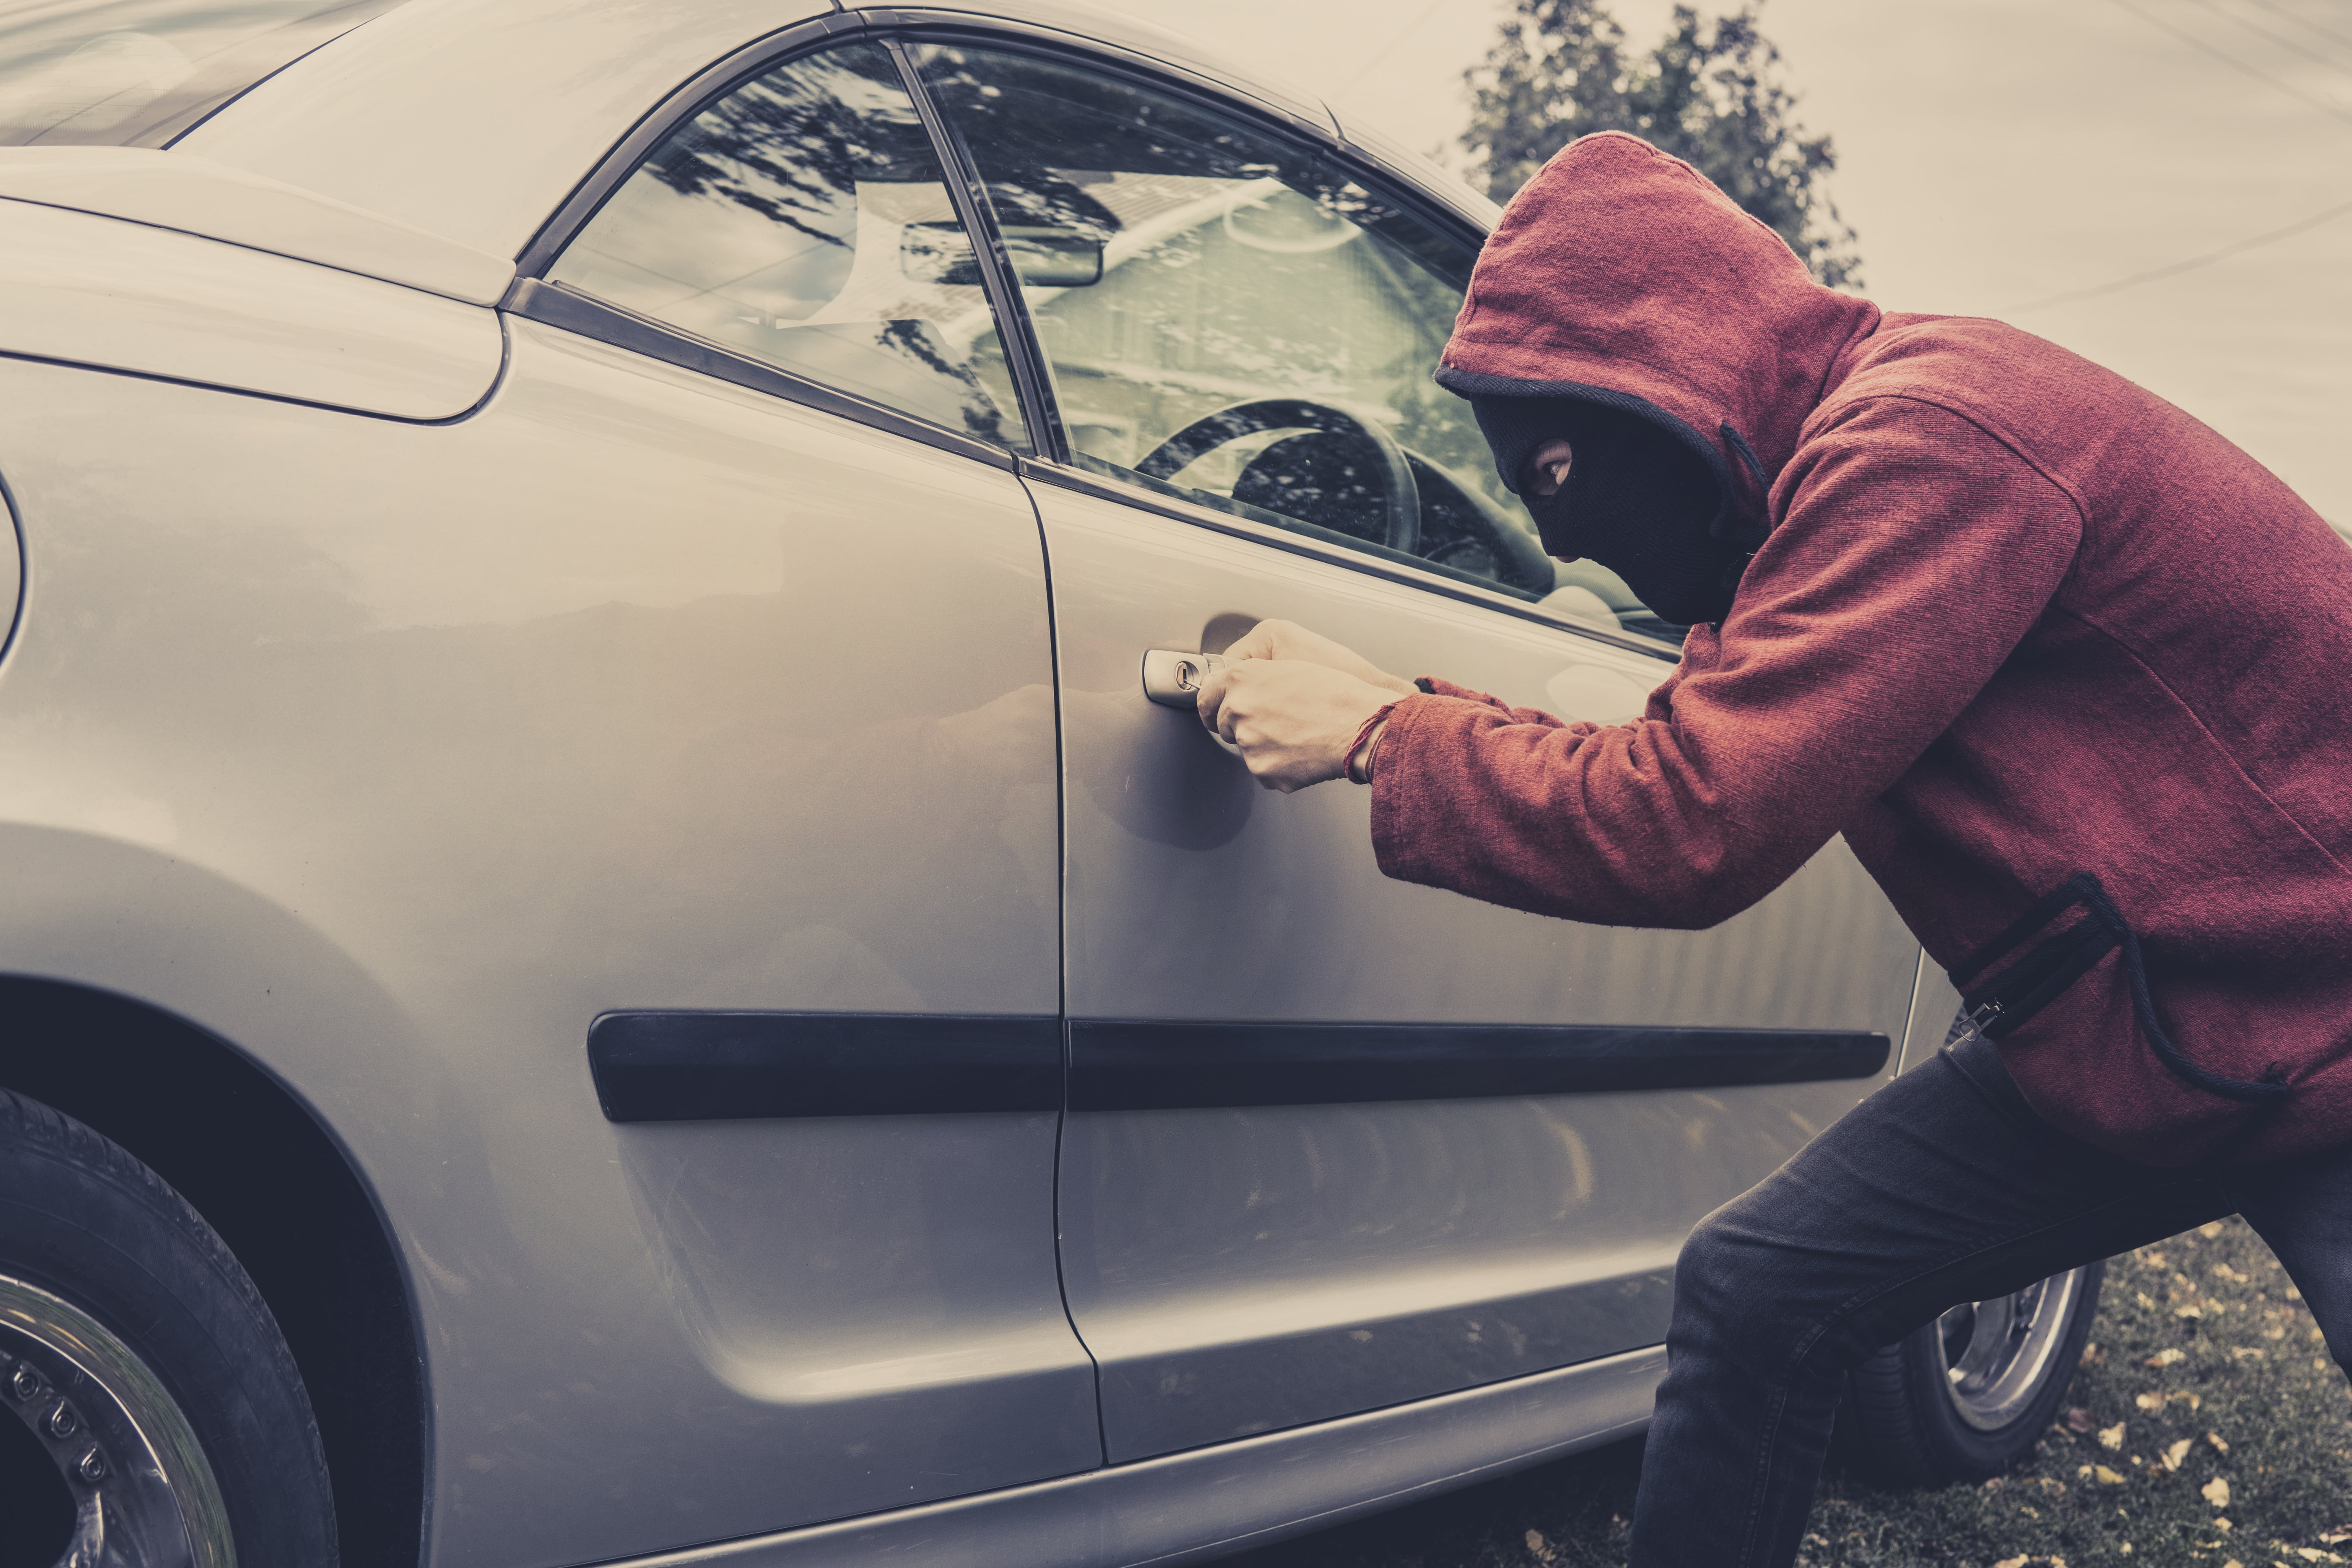 man in mask breaking into a car